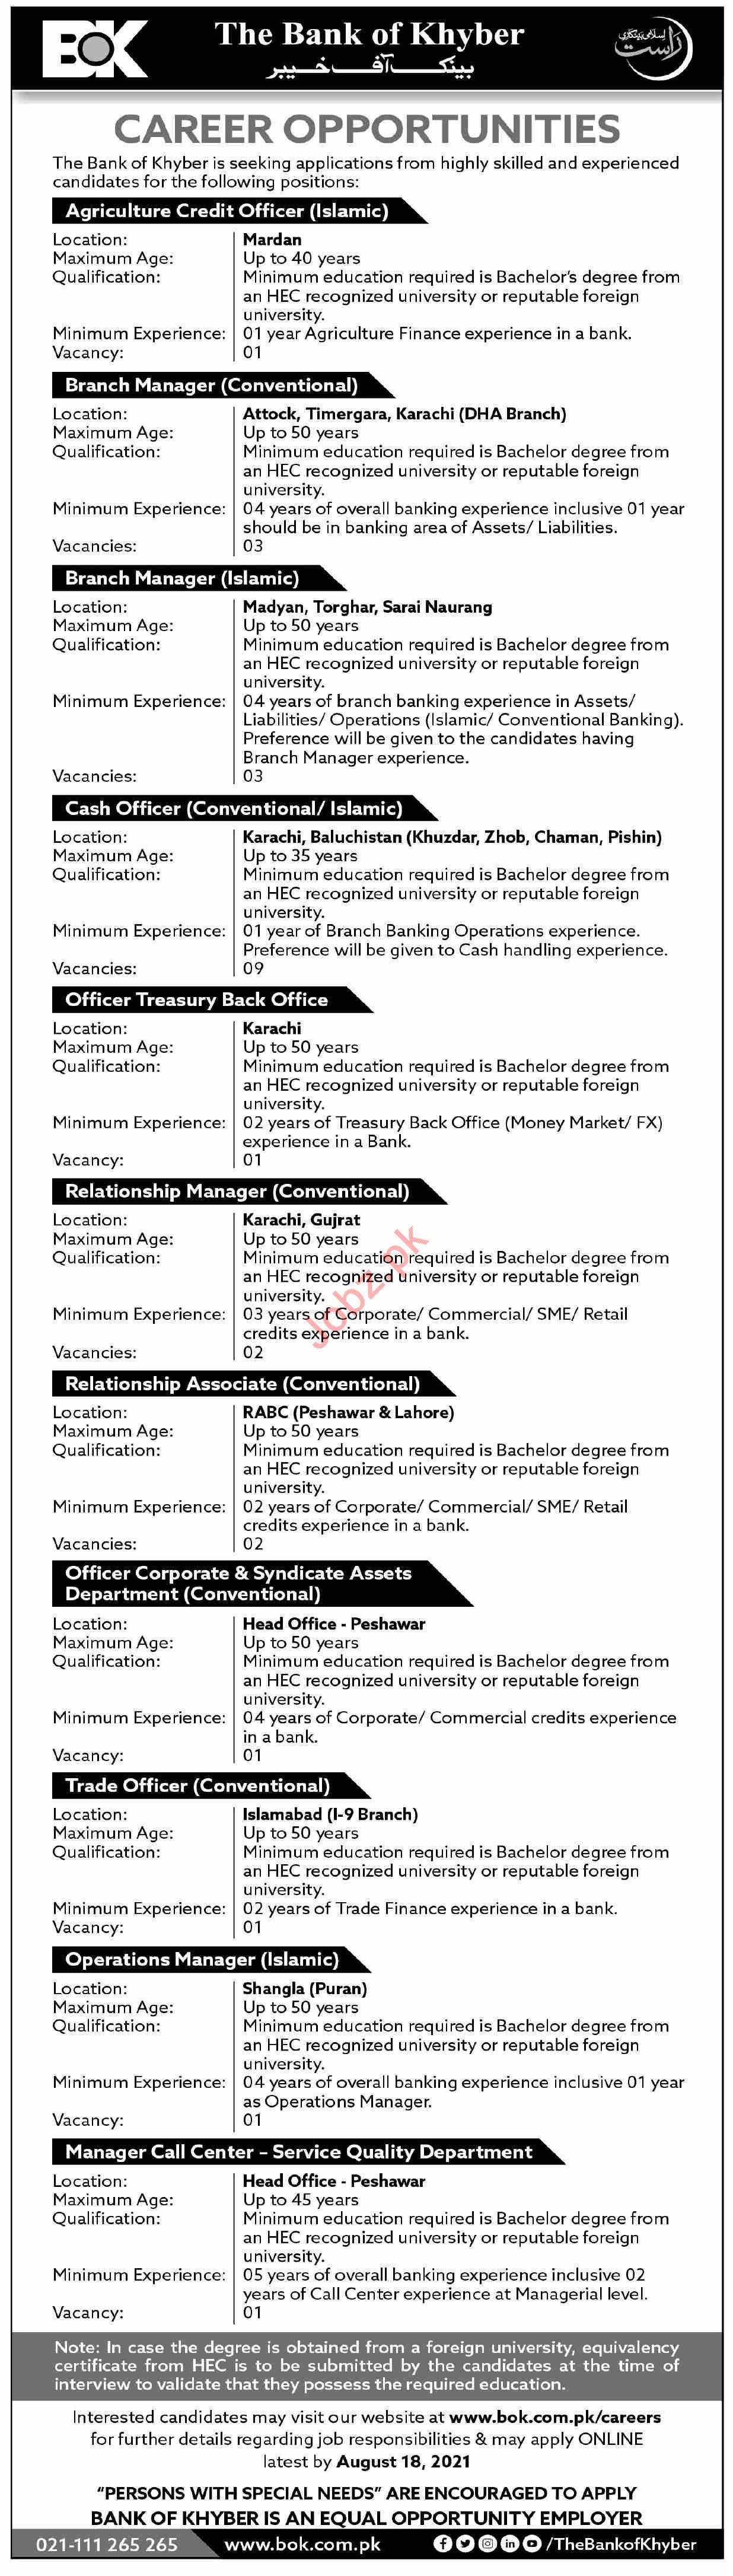 The Bank of Khyber BOK Jobs 2021 Agriculture Credit Officer